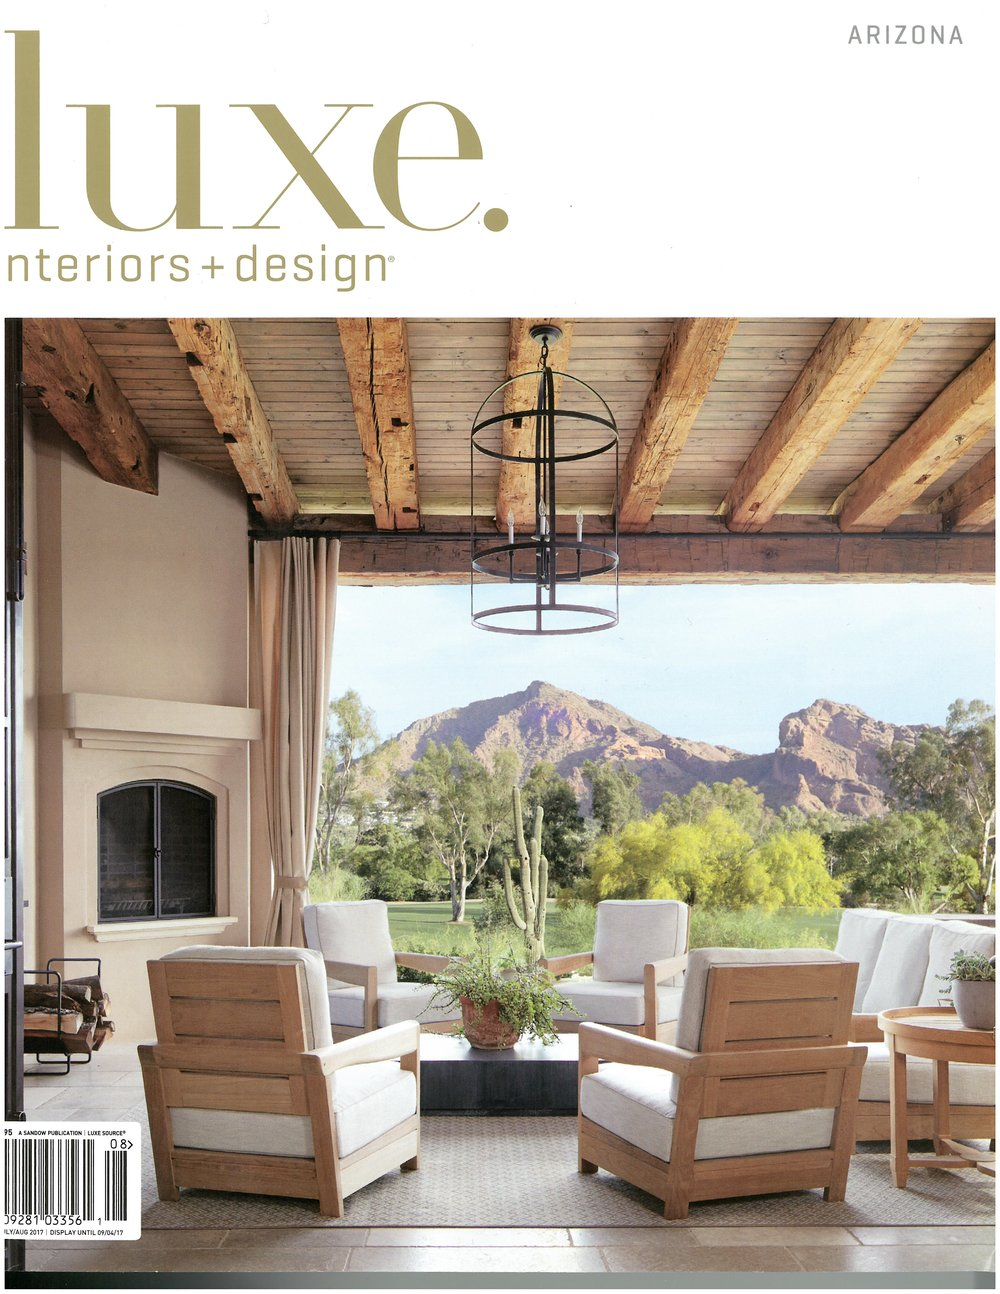 Luxe Interiors And Design July/August 2017: Desert Idyll